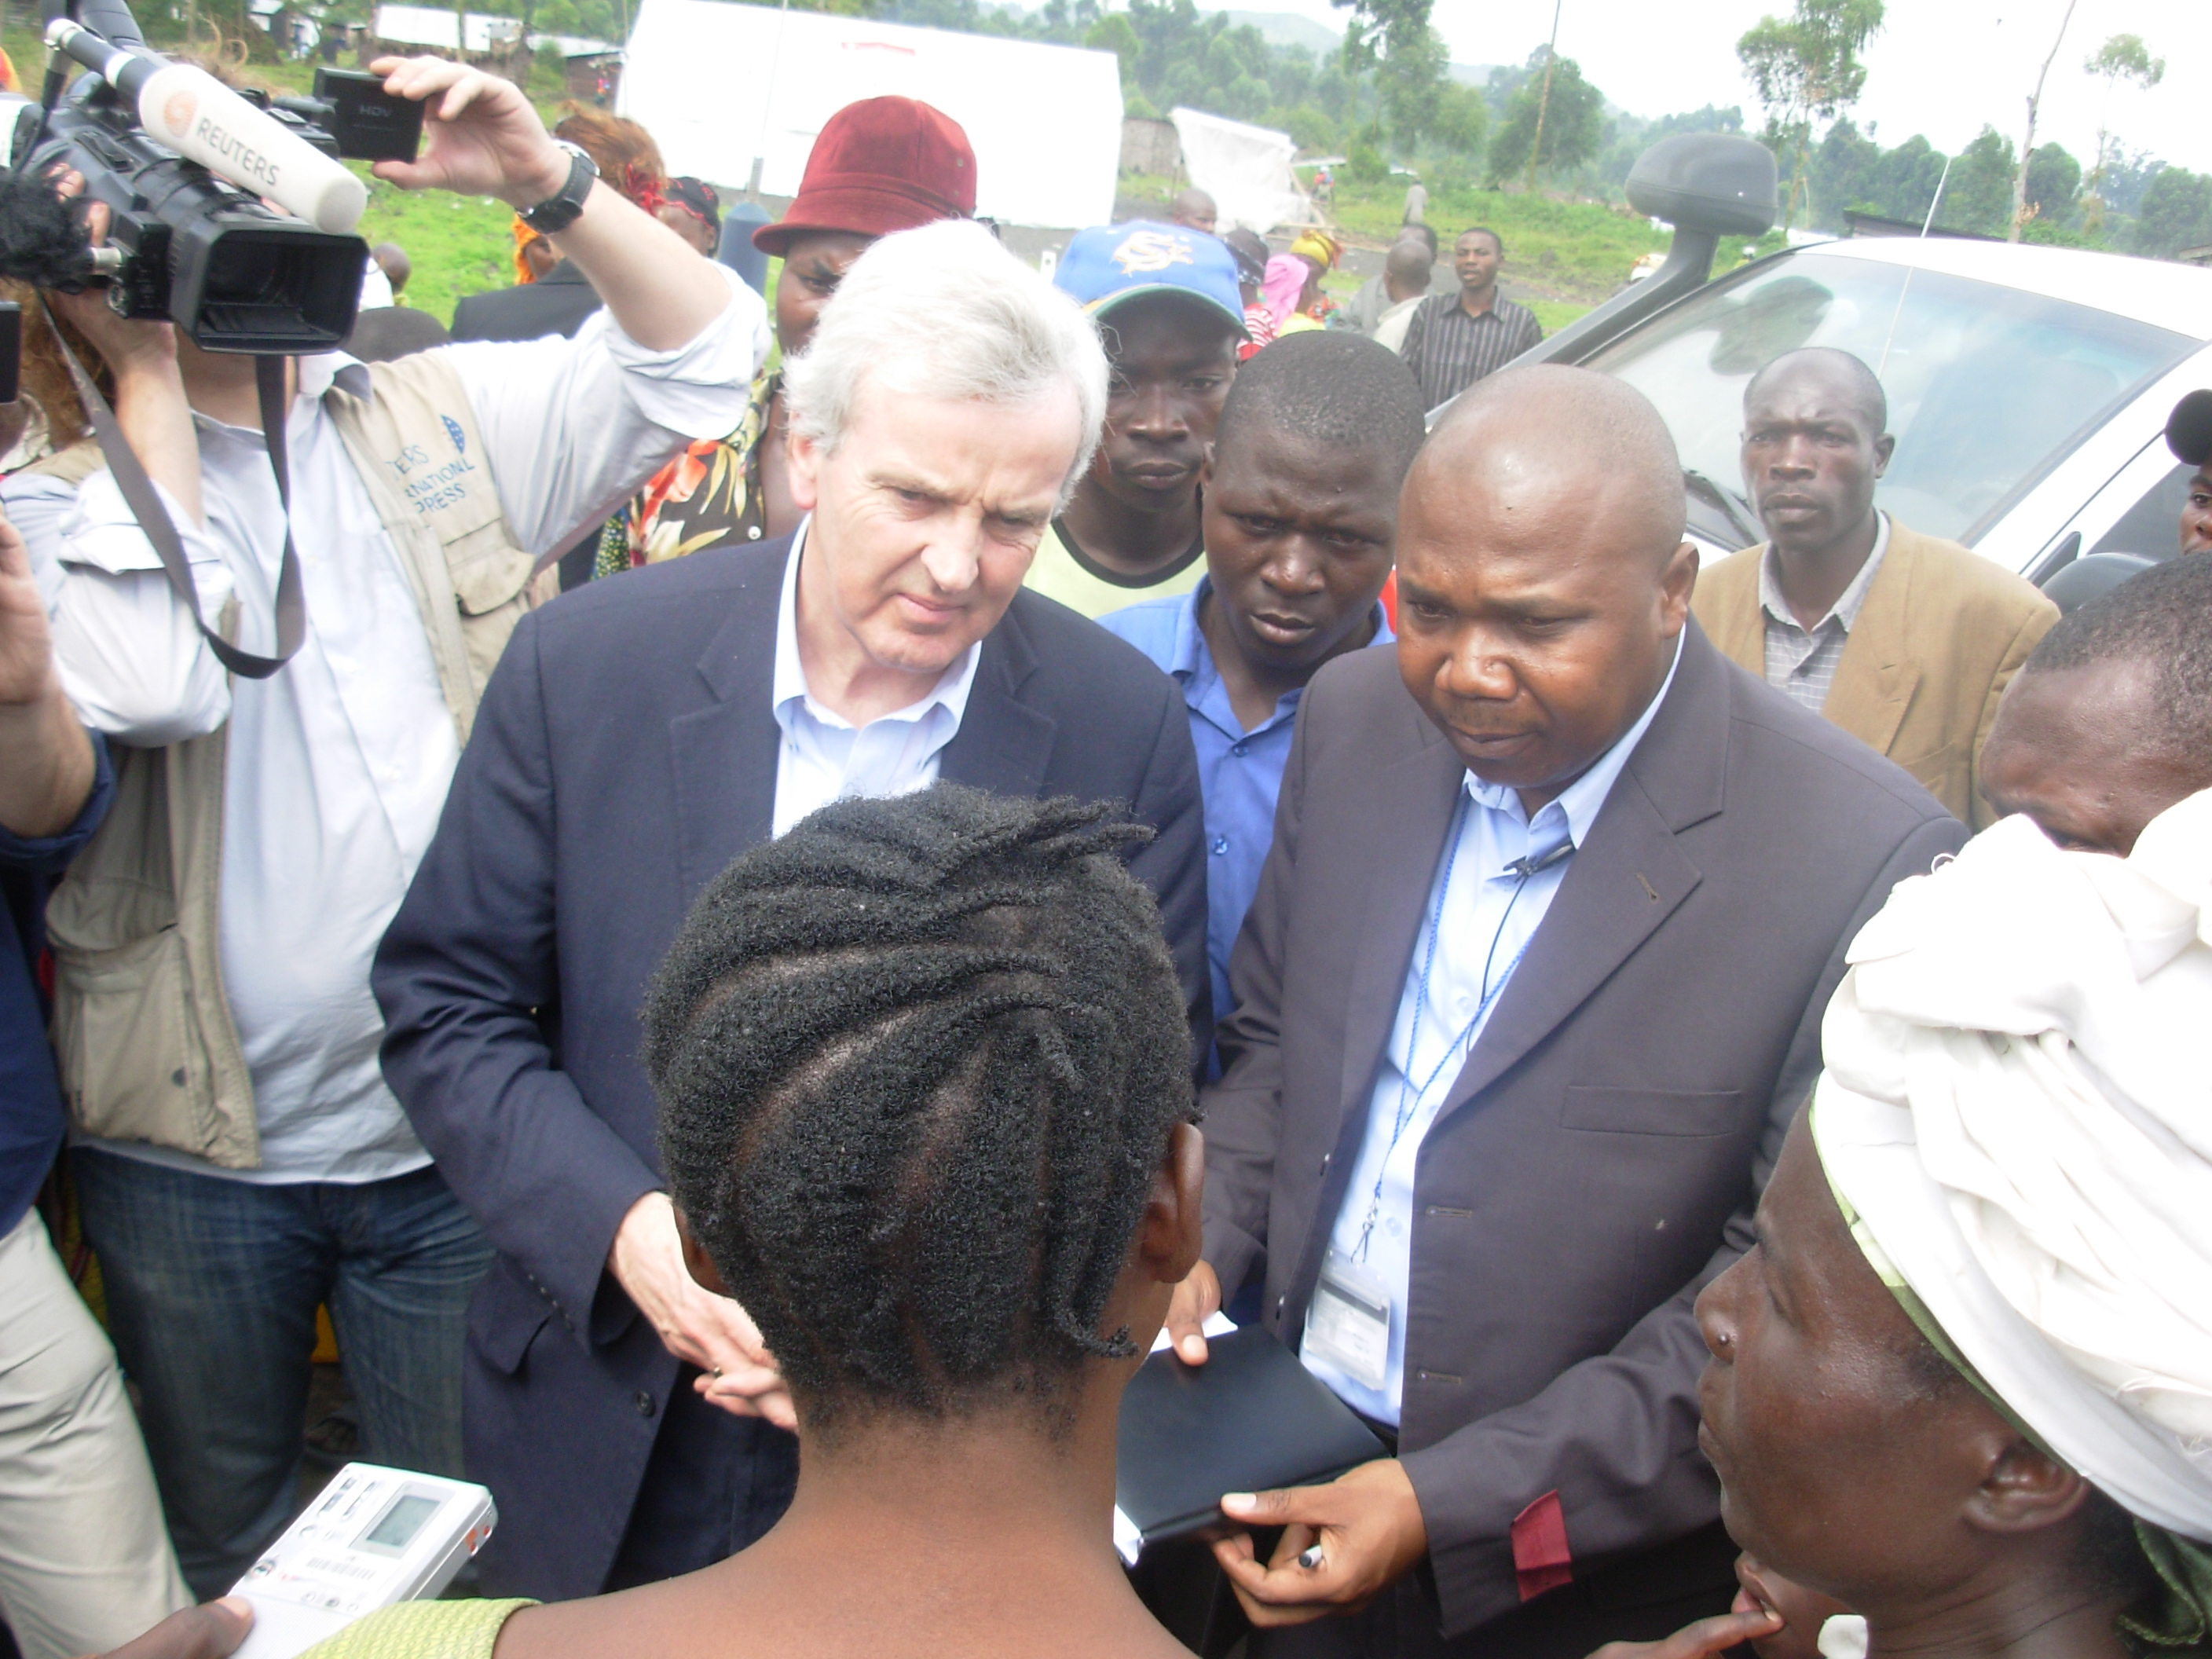 The Under UN general secretary, John Holmes, discussing on Saturday 7th February 2009 with IDPs in Kibati camp, Nord-Kivu